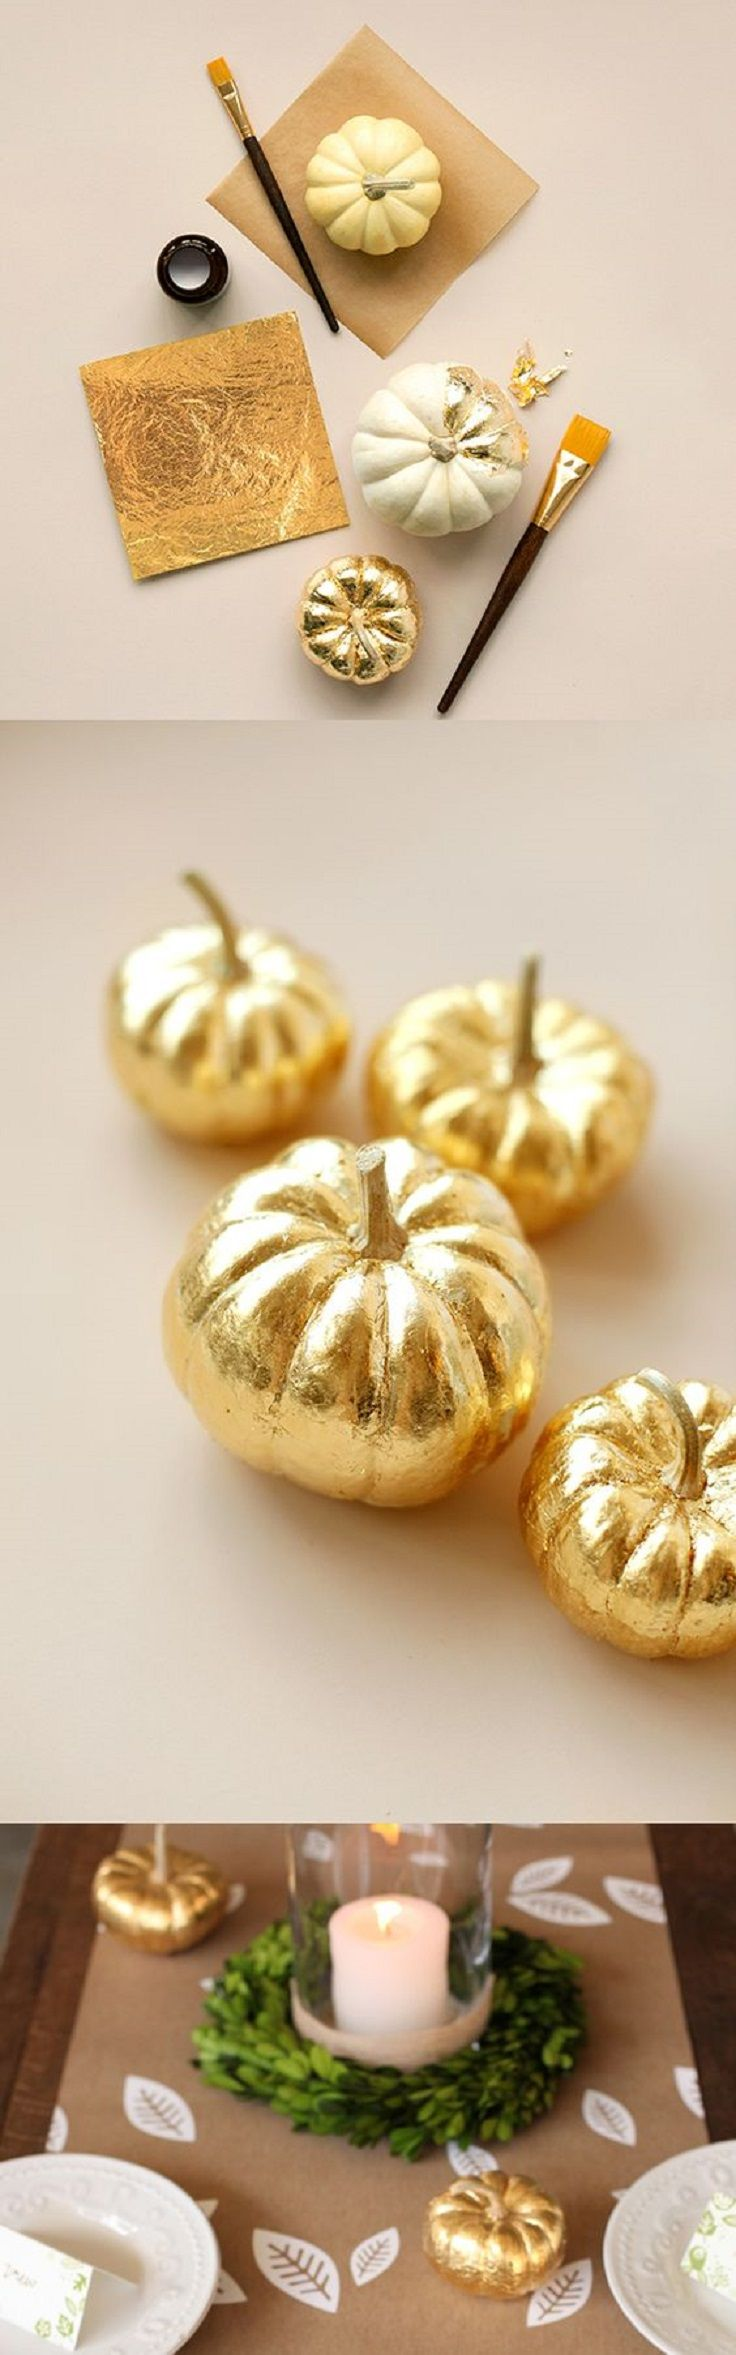 Golden DIY Pumpkin Decorations: Add a chic, yet luxe touch to your Thanksgiving table decor with gold-leafed pumpkins. The project finish is super shiny, textural and easier than you think! - 17 Joyous Thanksgiving Decorations to Set the Mood for Holidays